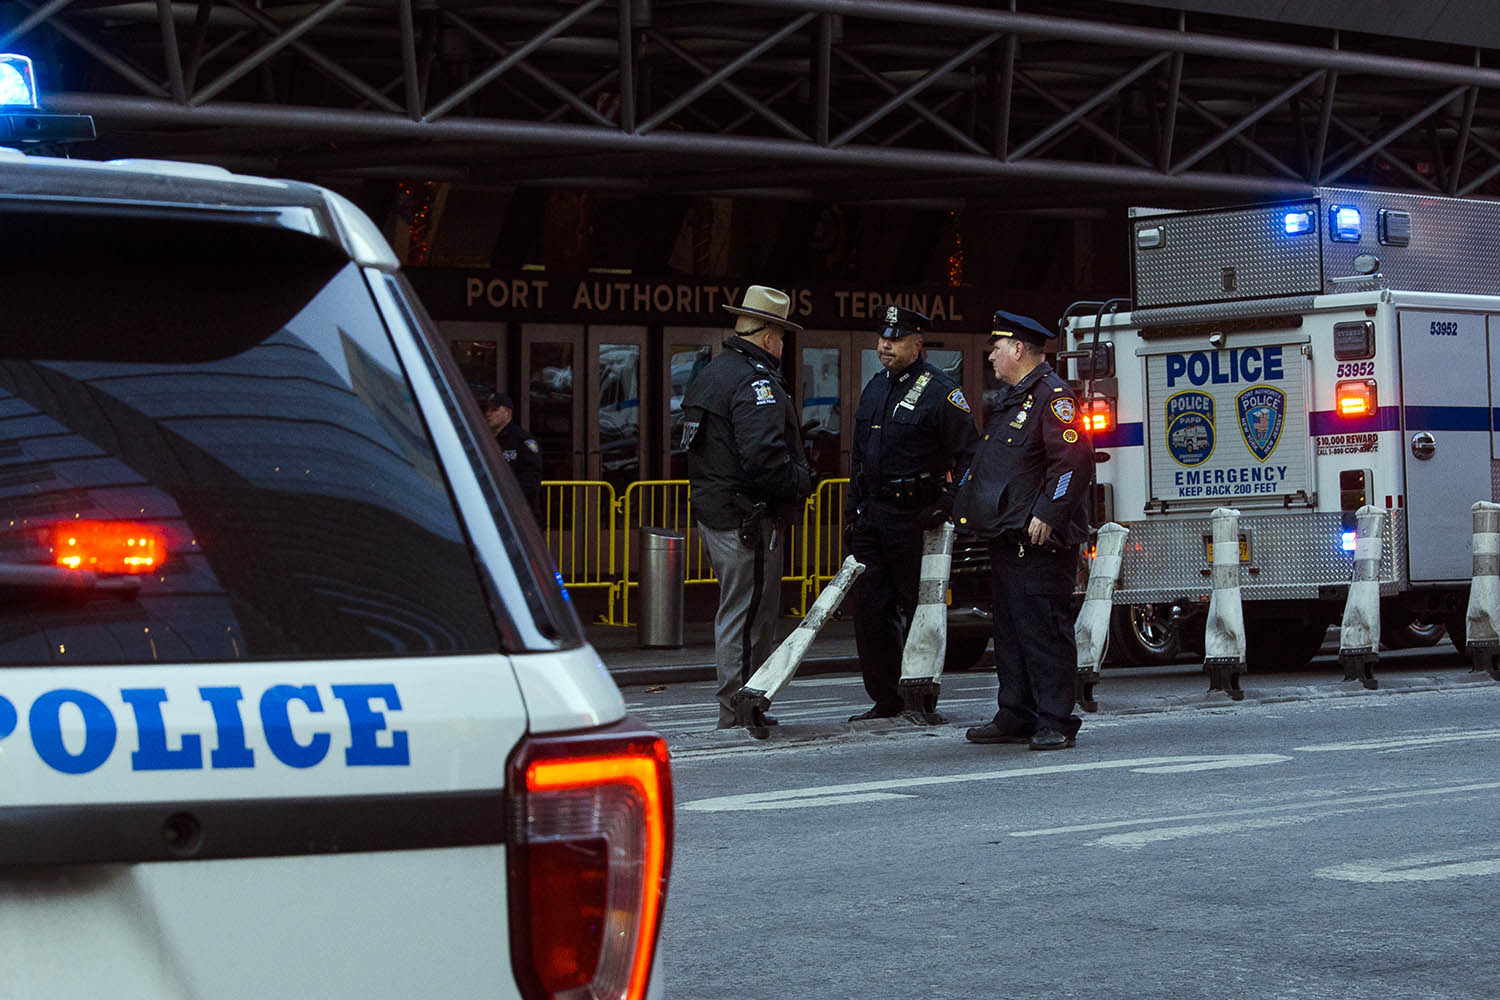 <div class='meta'><div class='origin-logo' data-origin='AP'></div><span class='caption-text' data-credit='AP Photo/Andres Kudacki'>Police stand guard in front of the Port Authority Bus Terminal near New York's Times Square following an explosion on Monday, Dec. 11, 2017.</span></div>